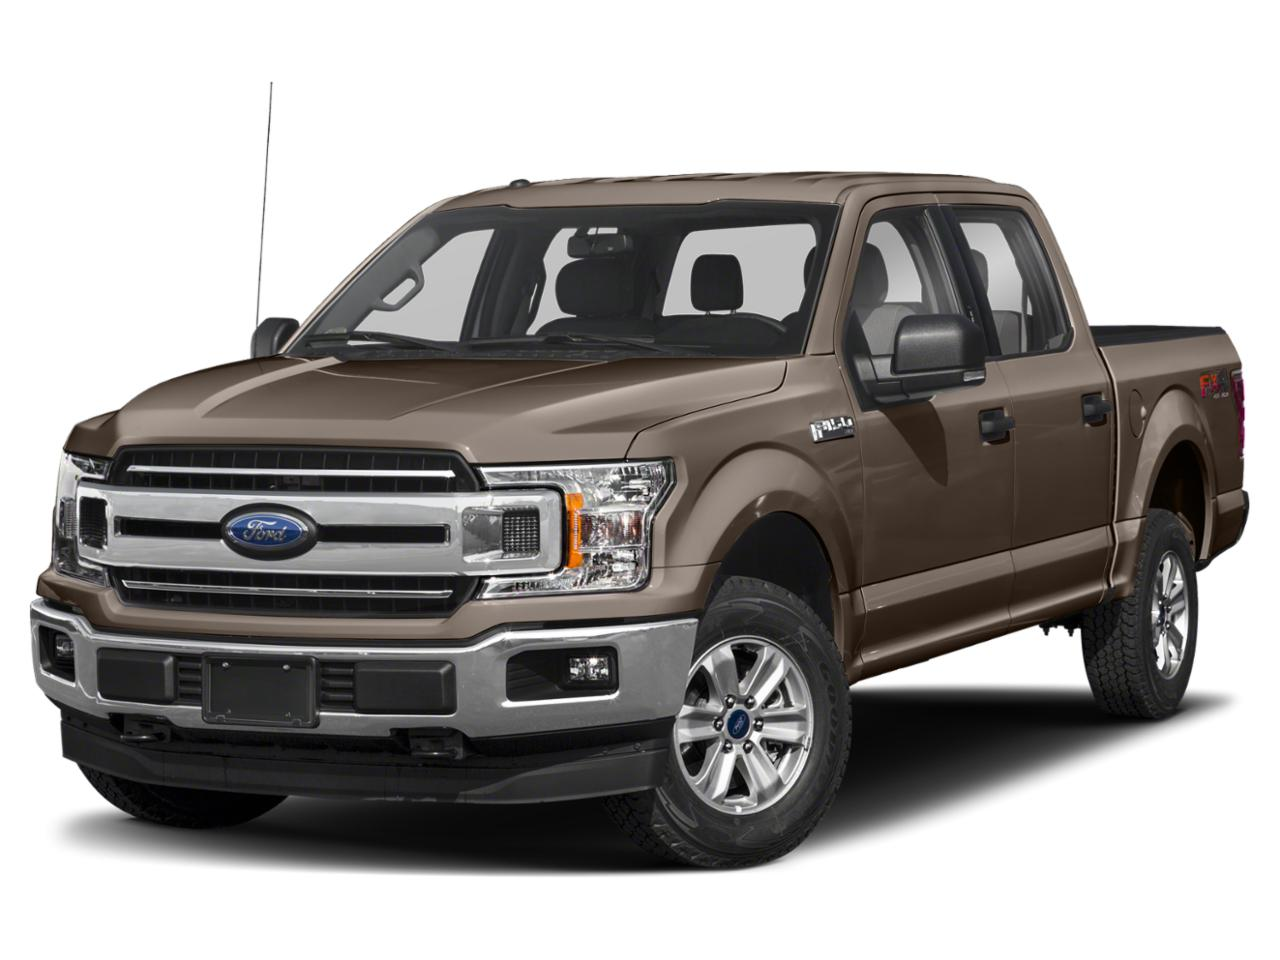 2018 Ford F-150 Vehicle Photo in Rockville, MD 20852